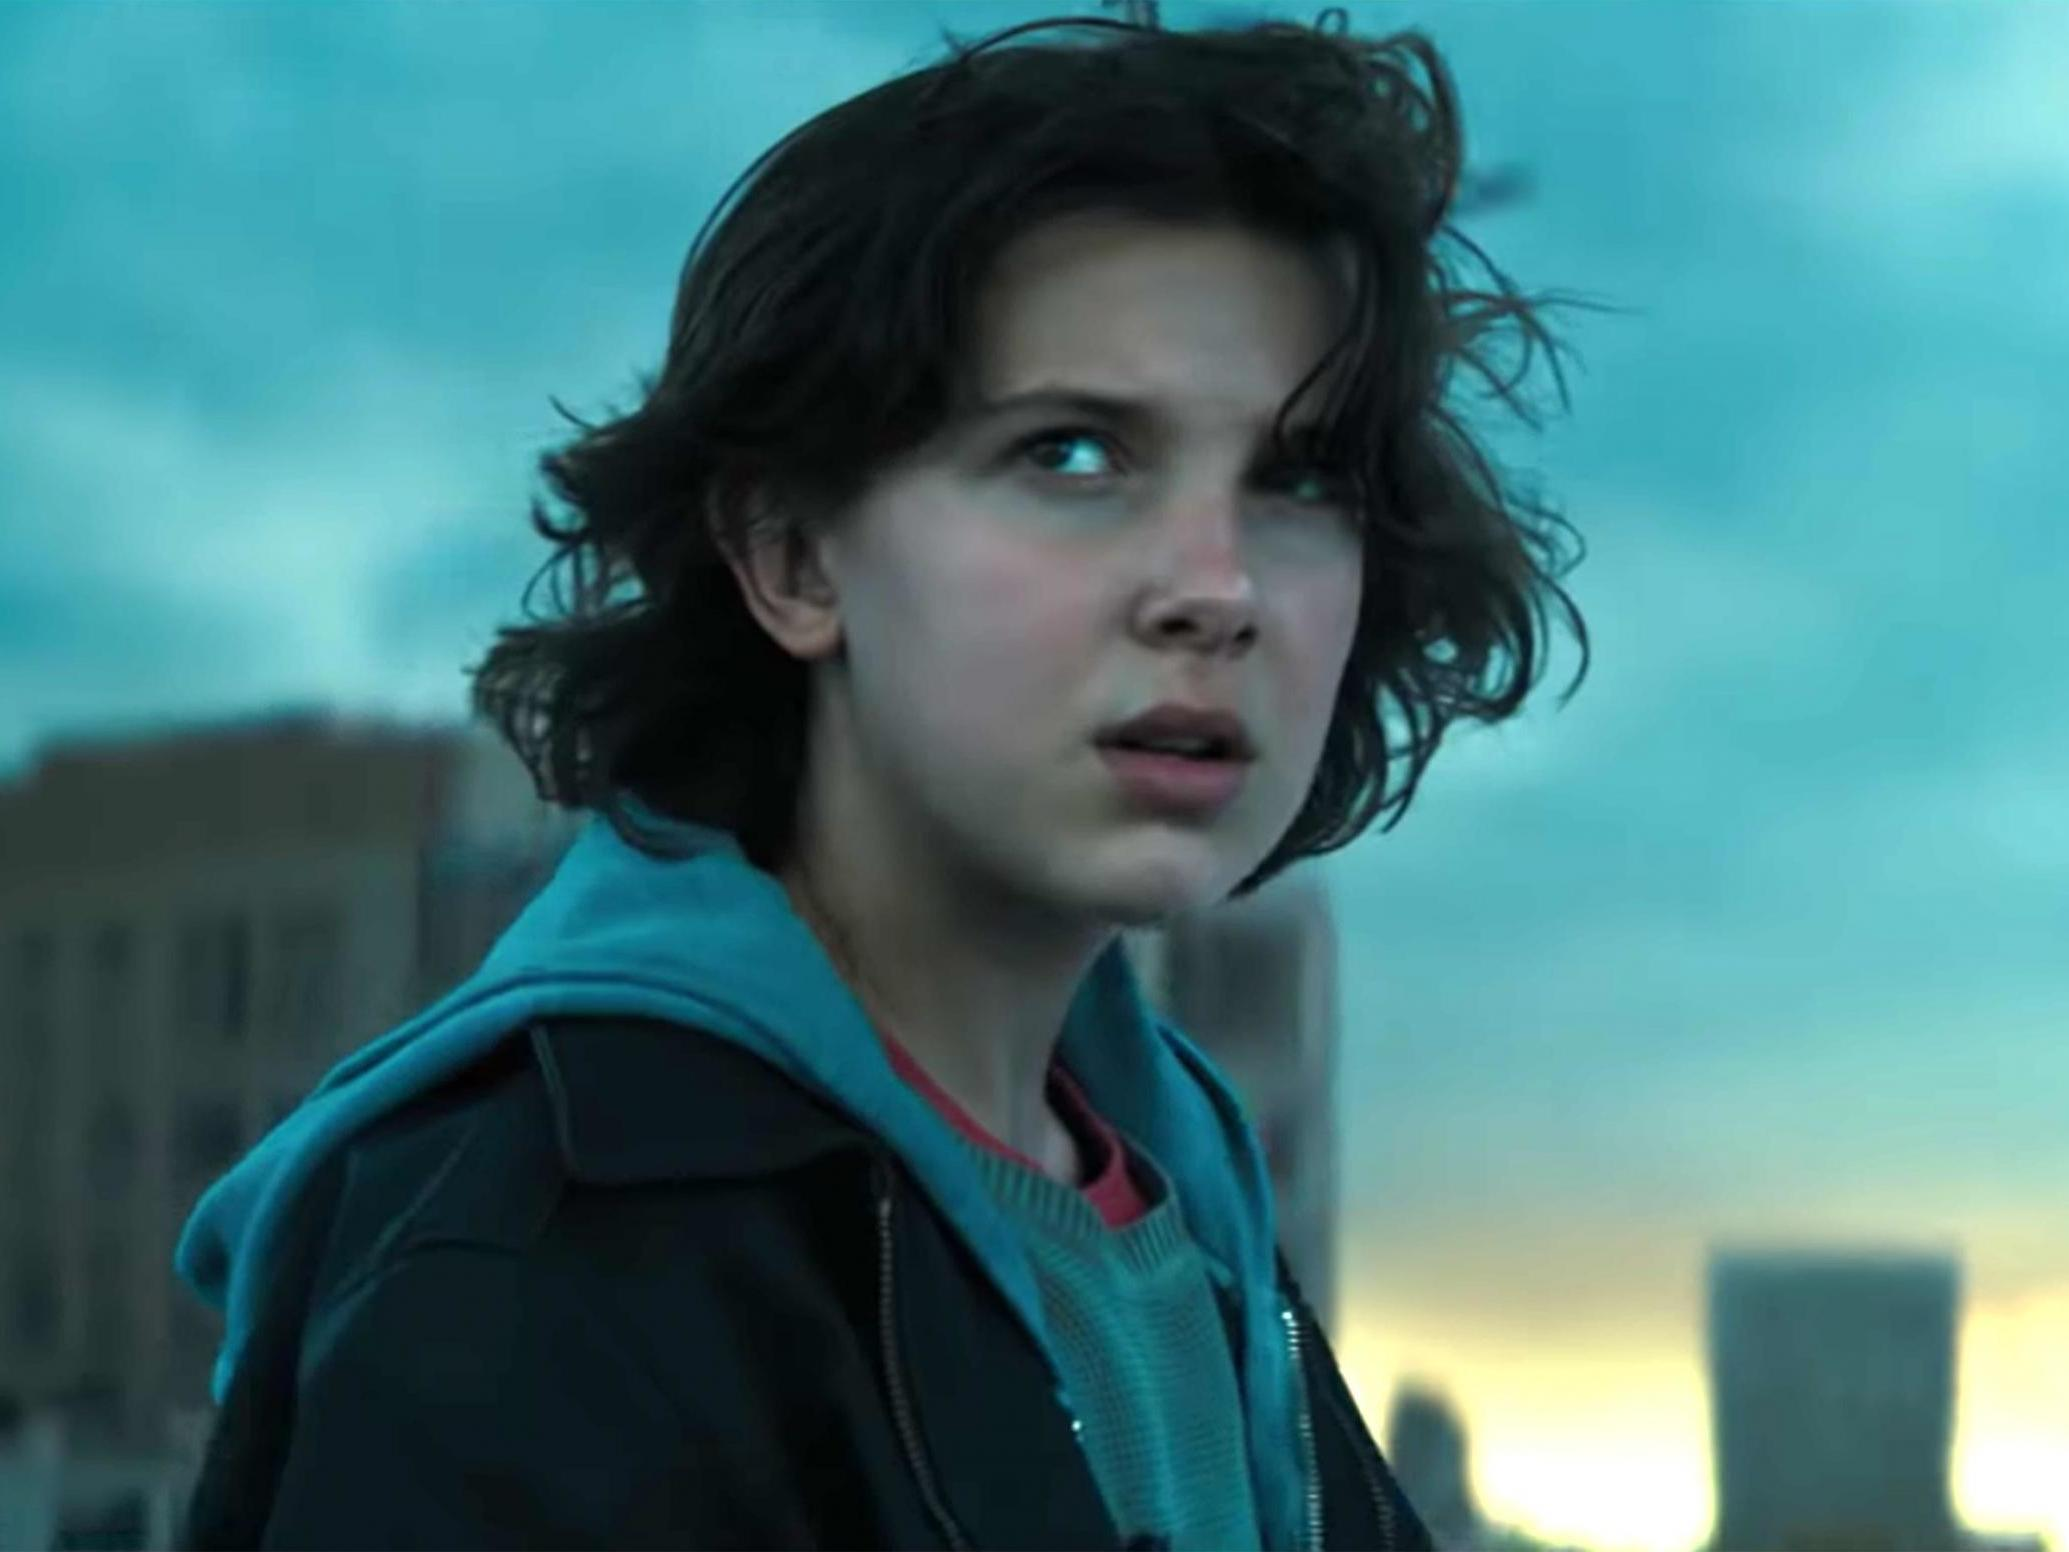 Godzilla vs Kong delayed by eight months following King of the Monsters flop | The Independent | The Independent